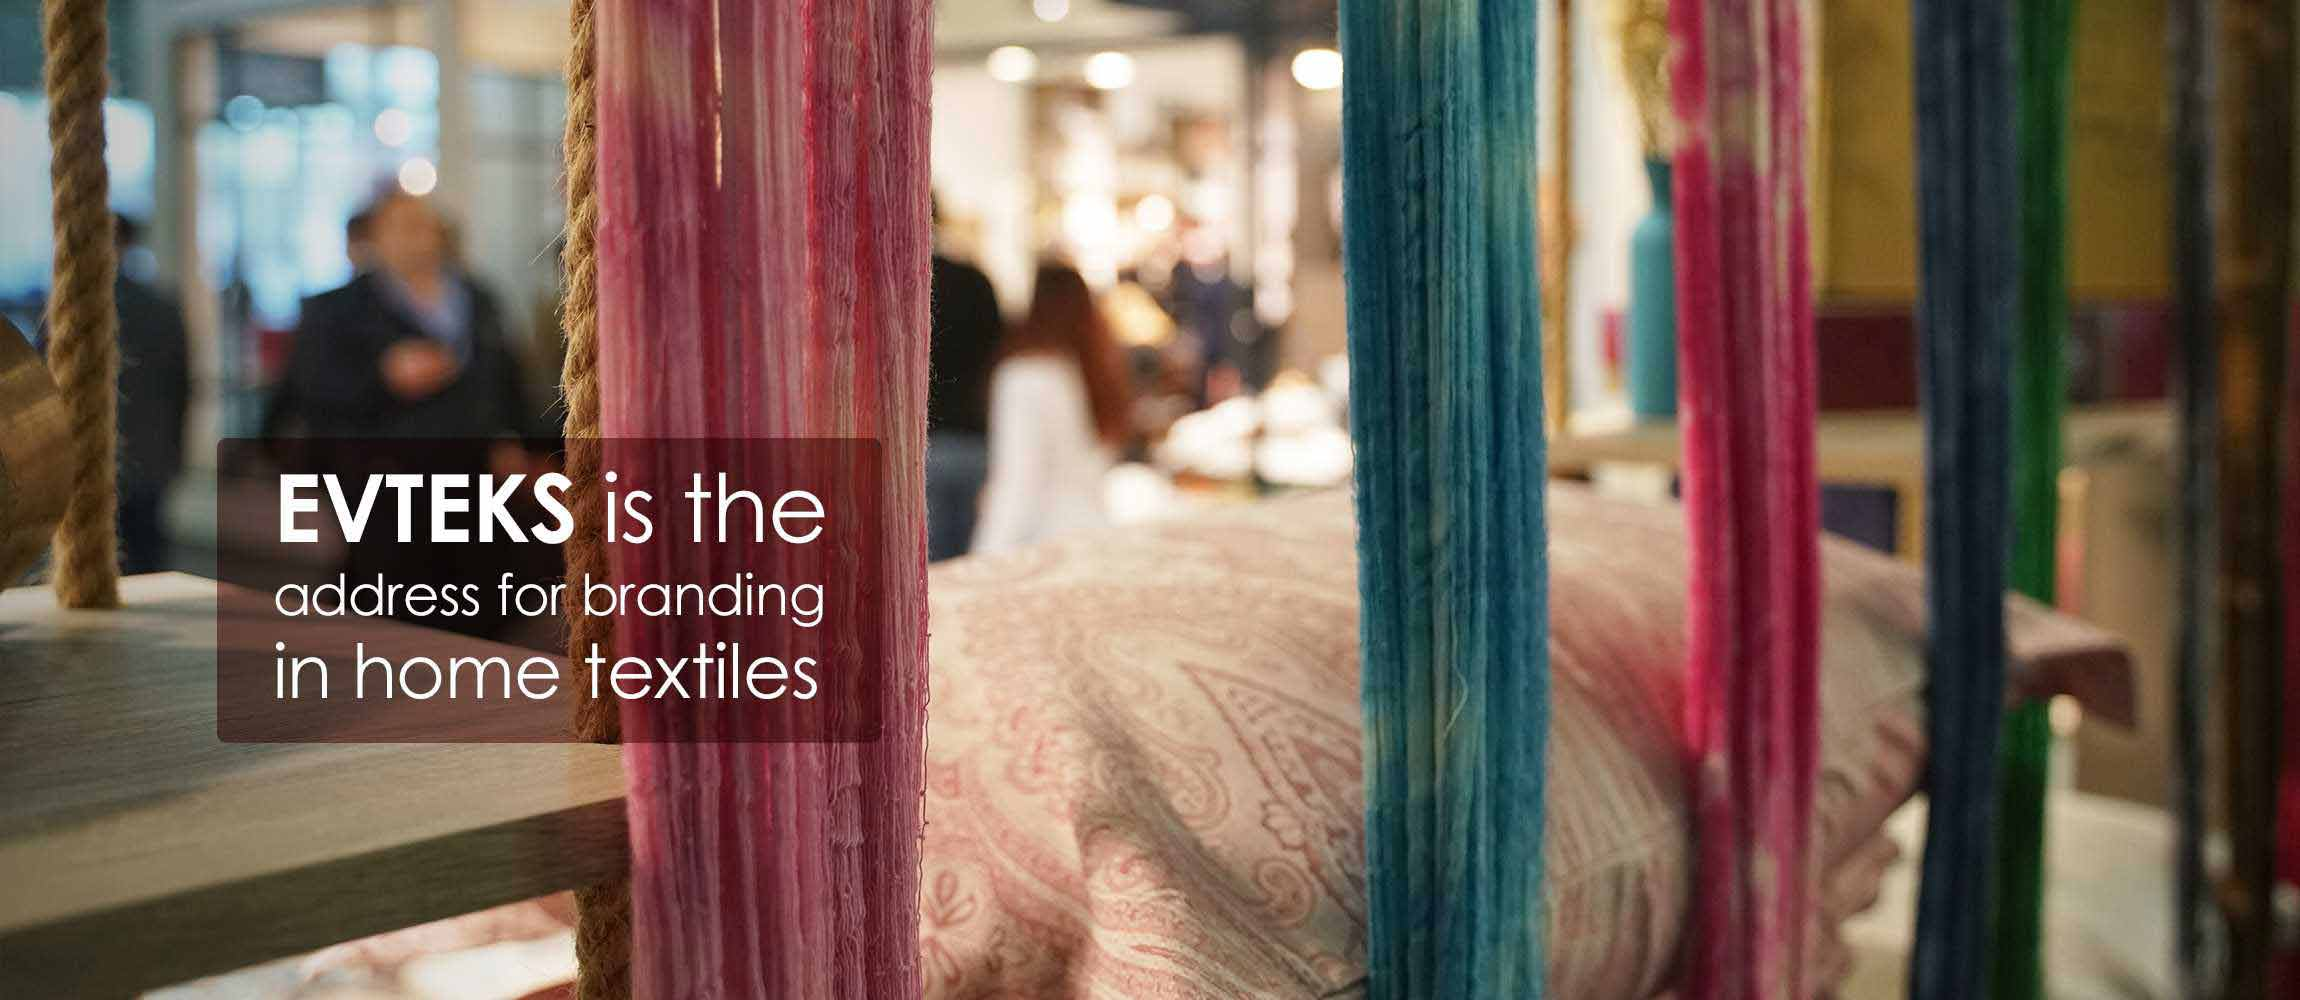 EVTEKS is the Address for Branding in Home Textiles